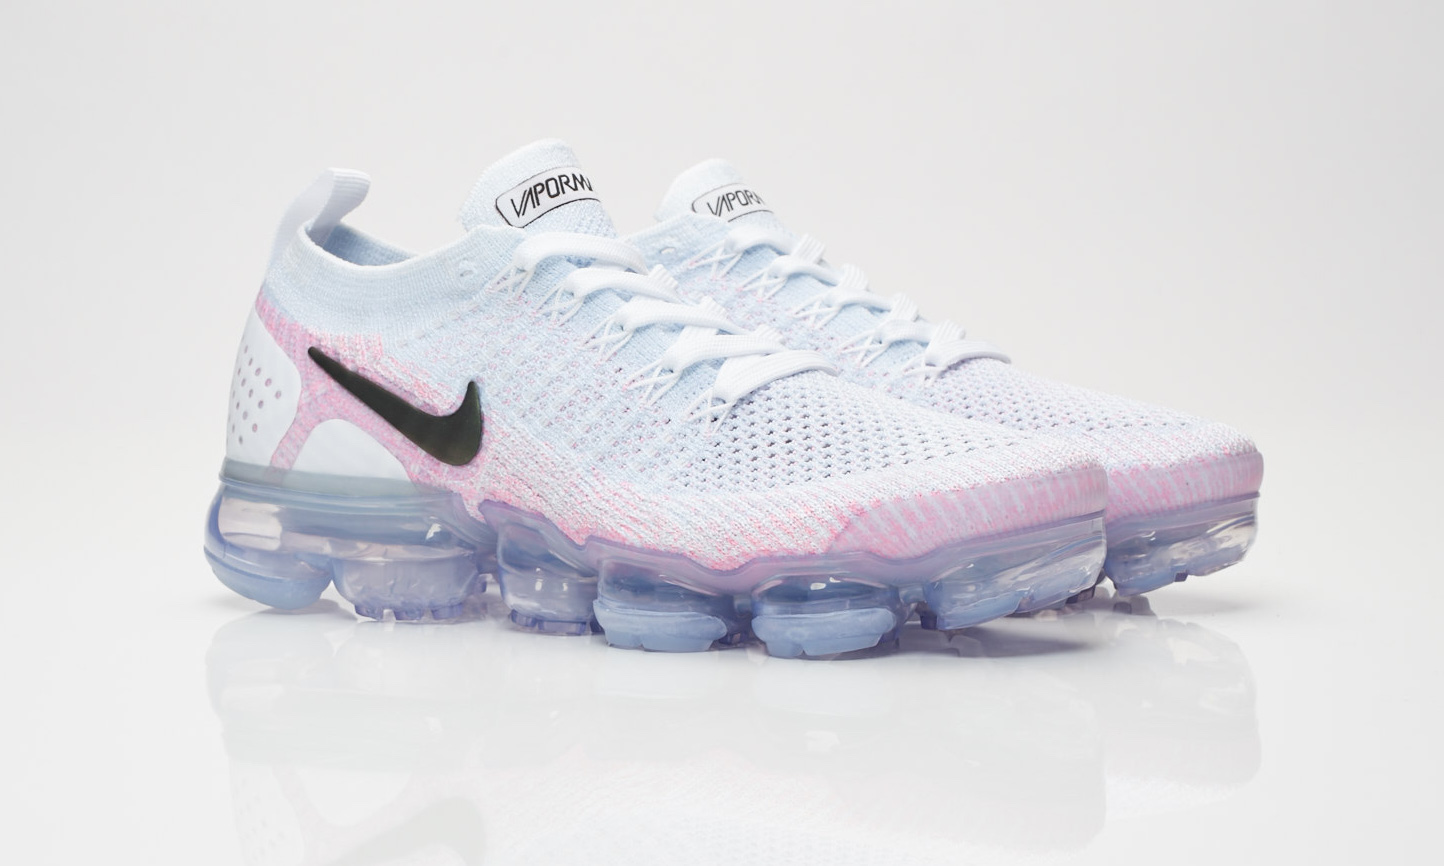 finest selection fce00 9cea0 Now Available: Nike Air VaporMax 2 Hydrogen Blue ...